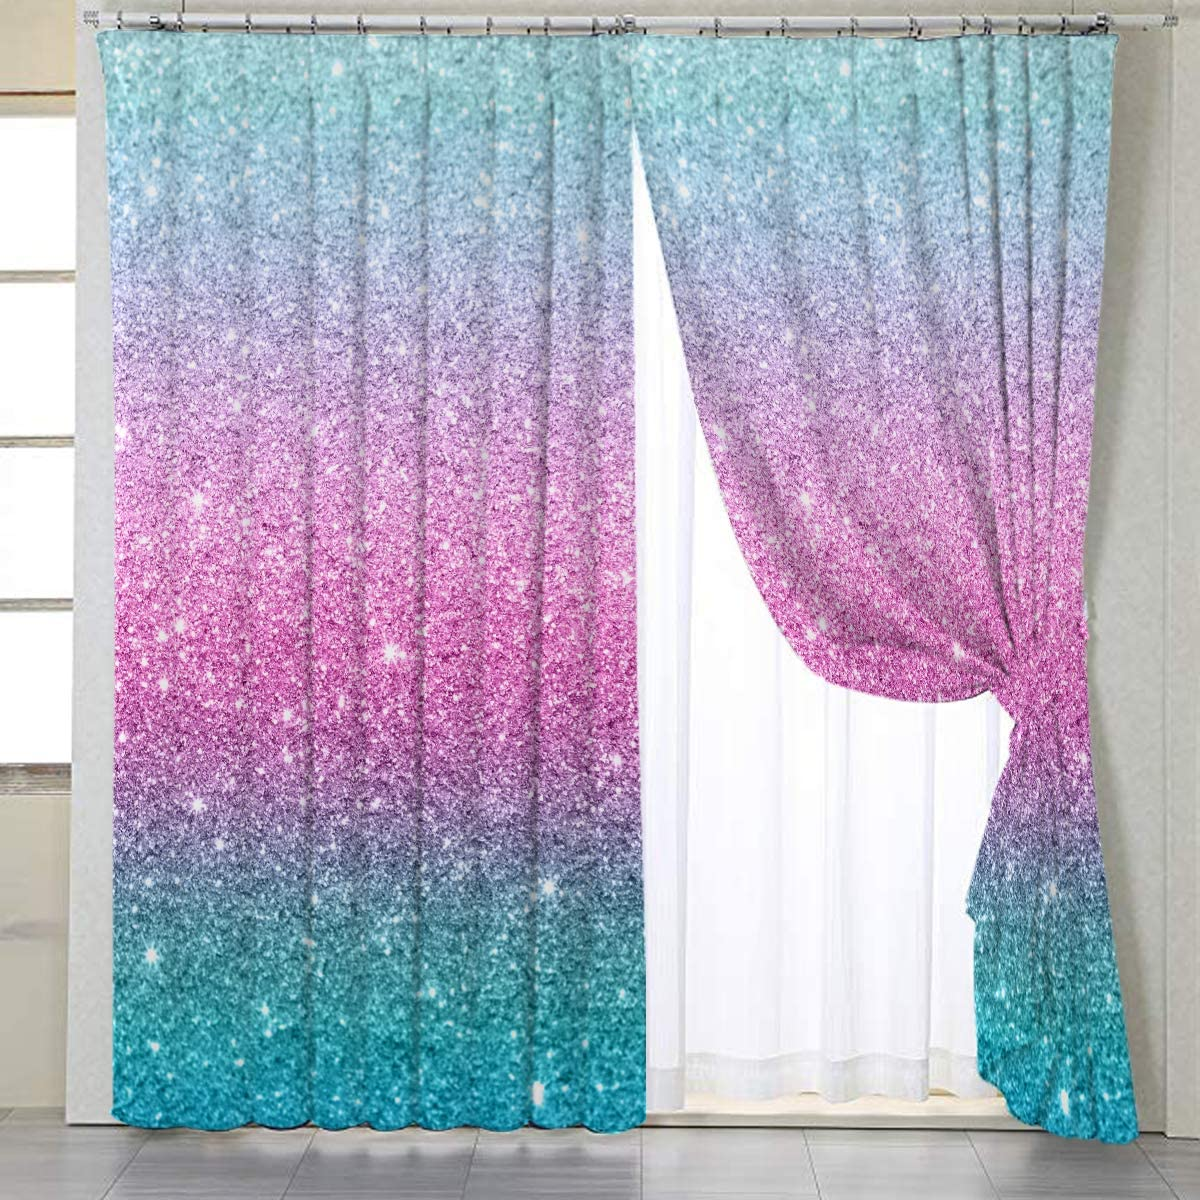 BlessLiving Colorful Glitter Window Curtains Girly Turquoise Bedroom  Curtains Blue Pink and Purple Curtains forLiving Room,1 Panel,42\